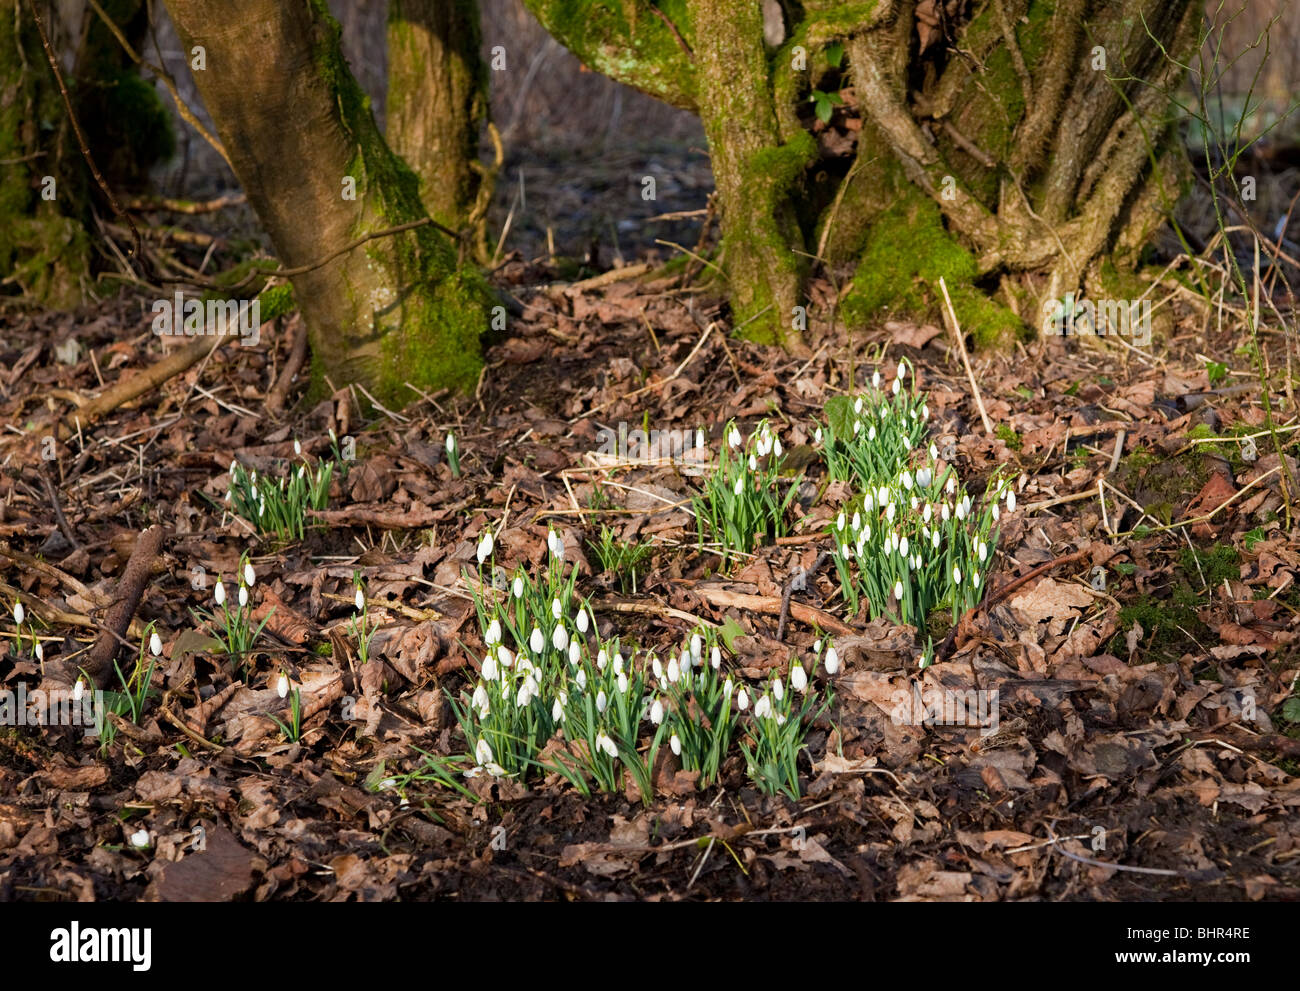 Snow drops in an English wood - Stock Image